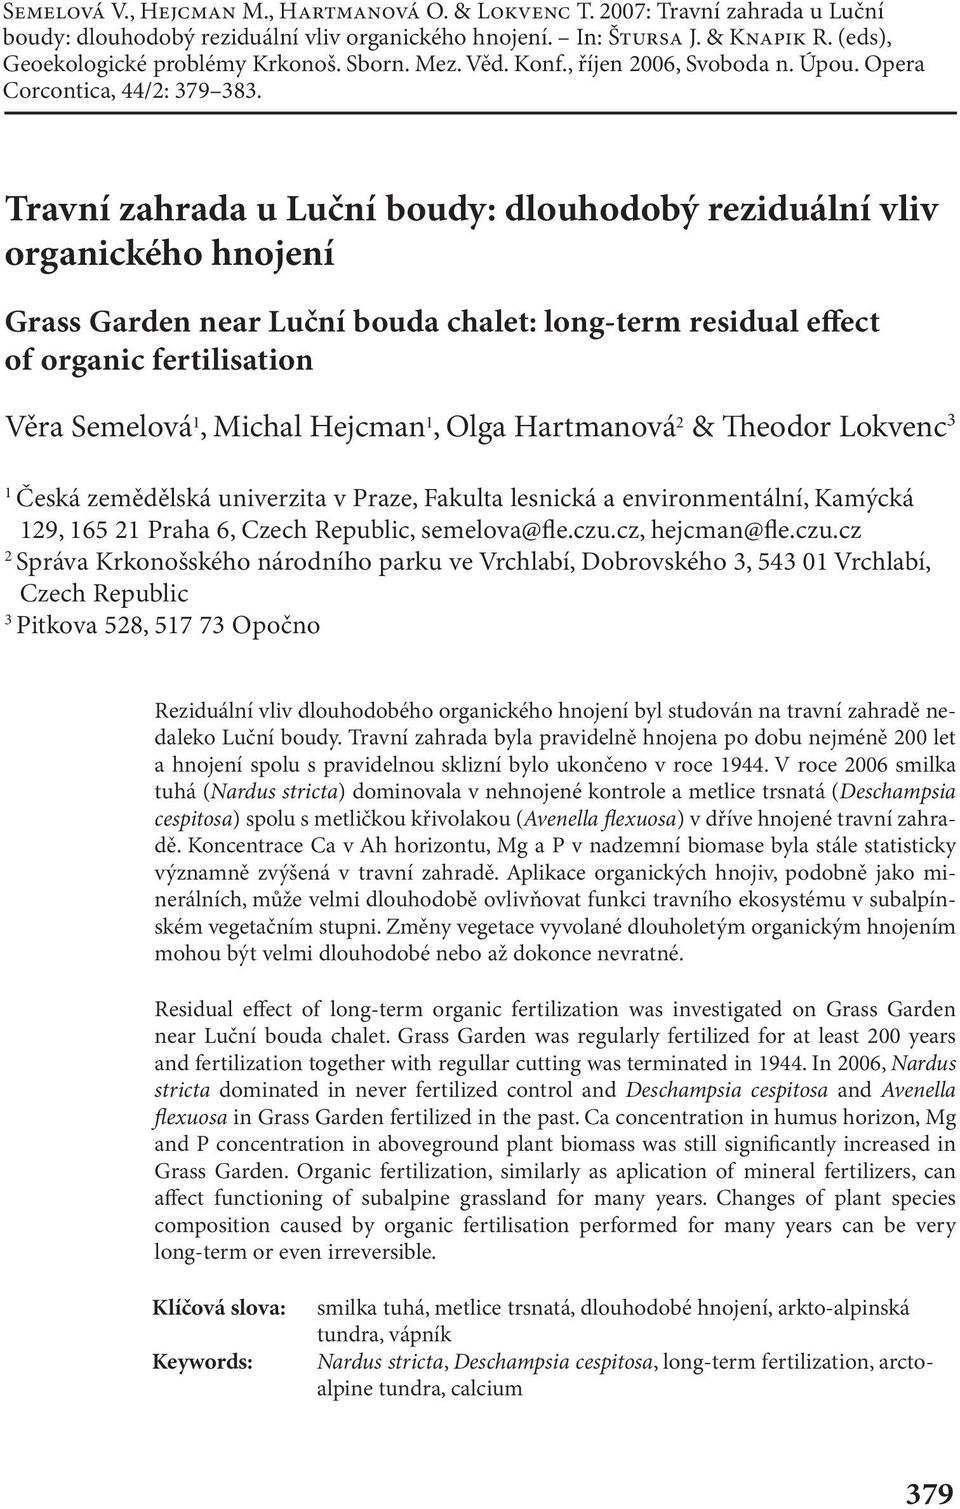 Travní zahrada u Luční boudy: dlouhodobý reziduální vliv organického hnojení Grass Garden near Luční bouda chalet: long-term residual effect of organic fertilisation Věra Semelová 1, Michal Hejcman